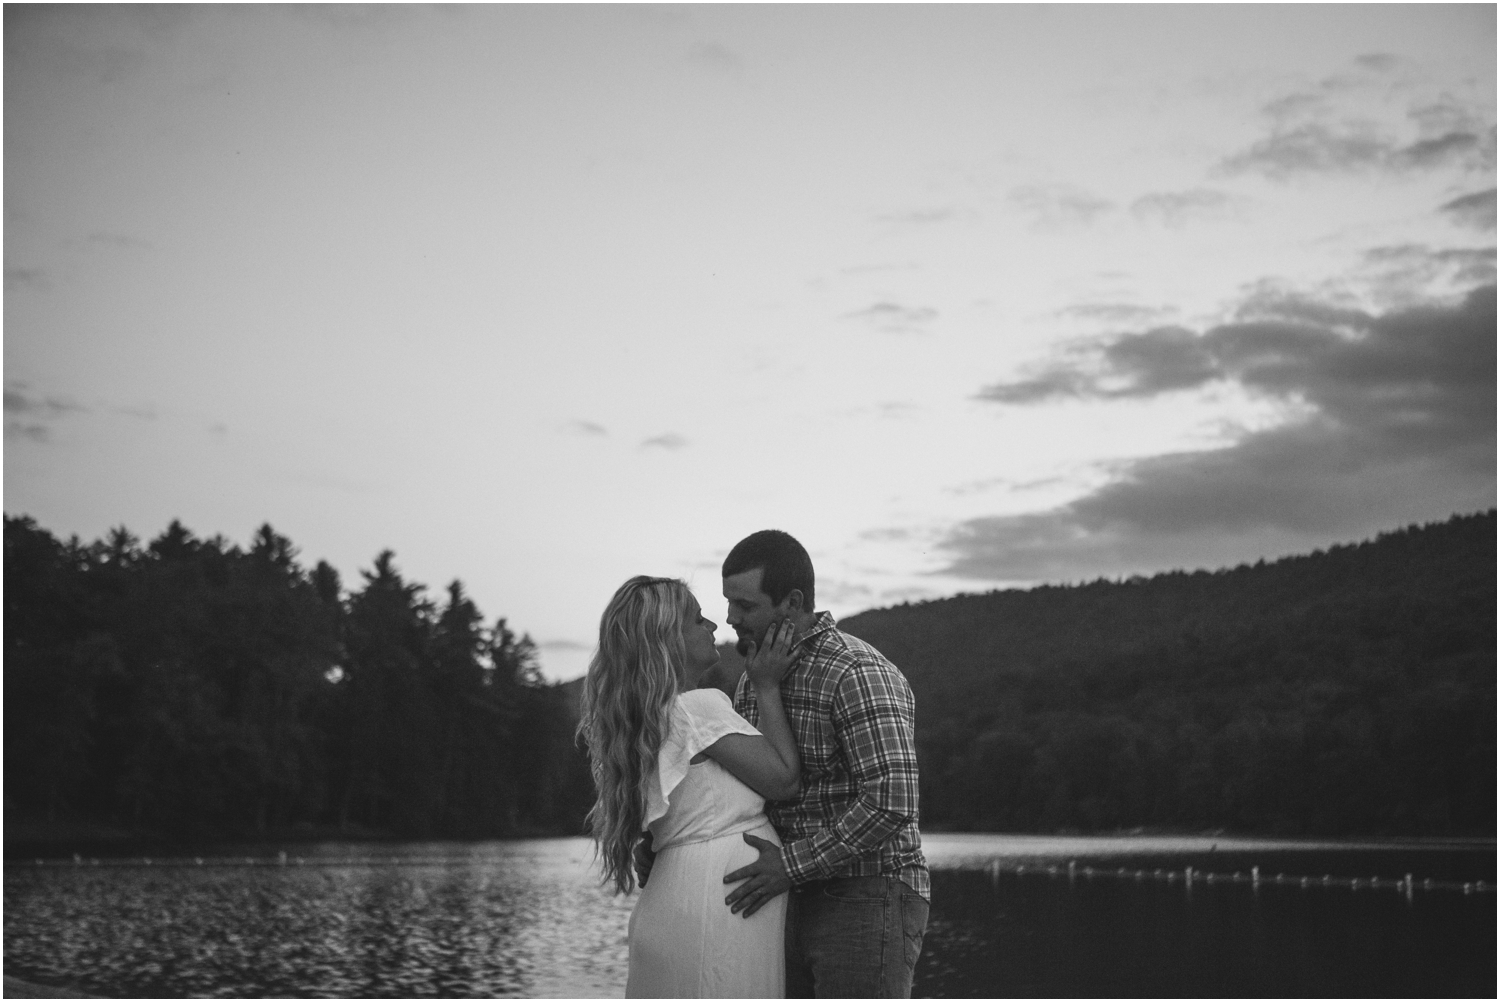 katy-sergent-photography-johnson-city-tennessee-northest-tn-elopement-intimate-wedding-photographer-outdoors-adventurous-couples-adventure-lovers_0037.jpg